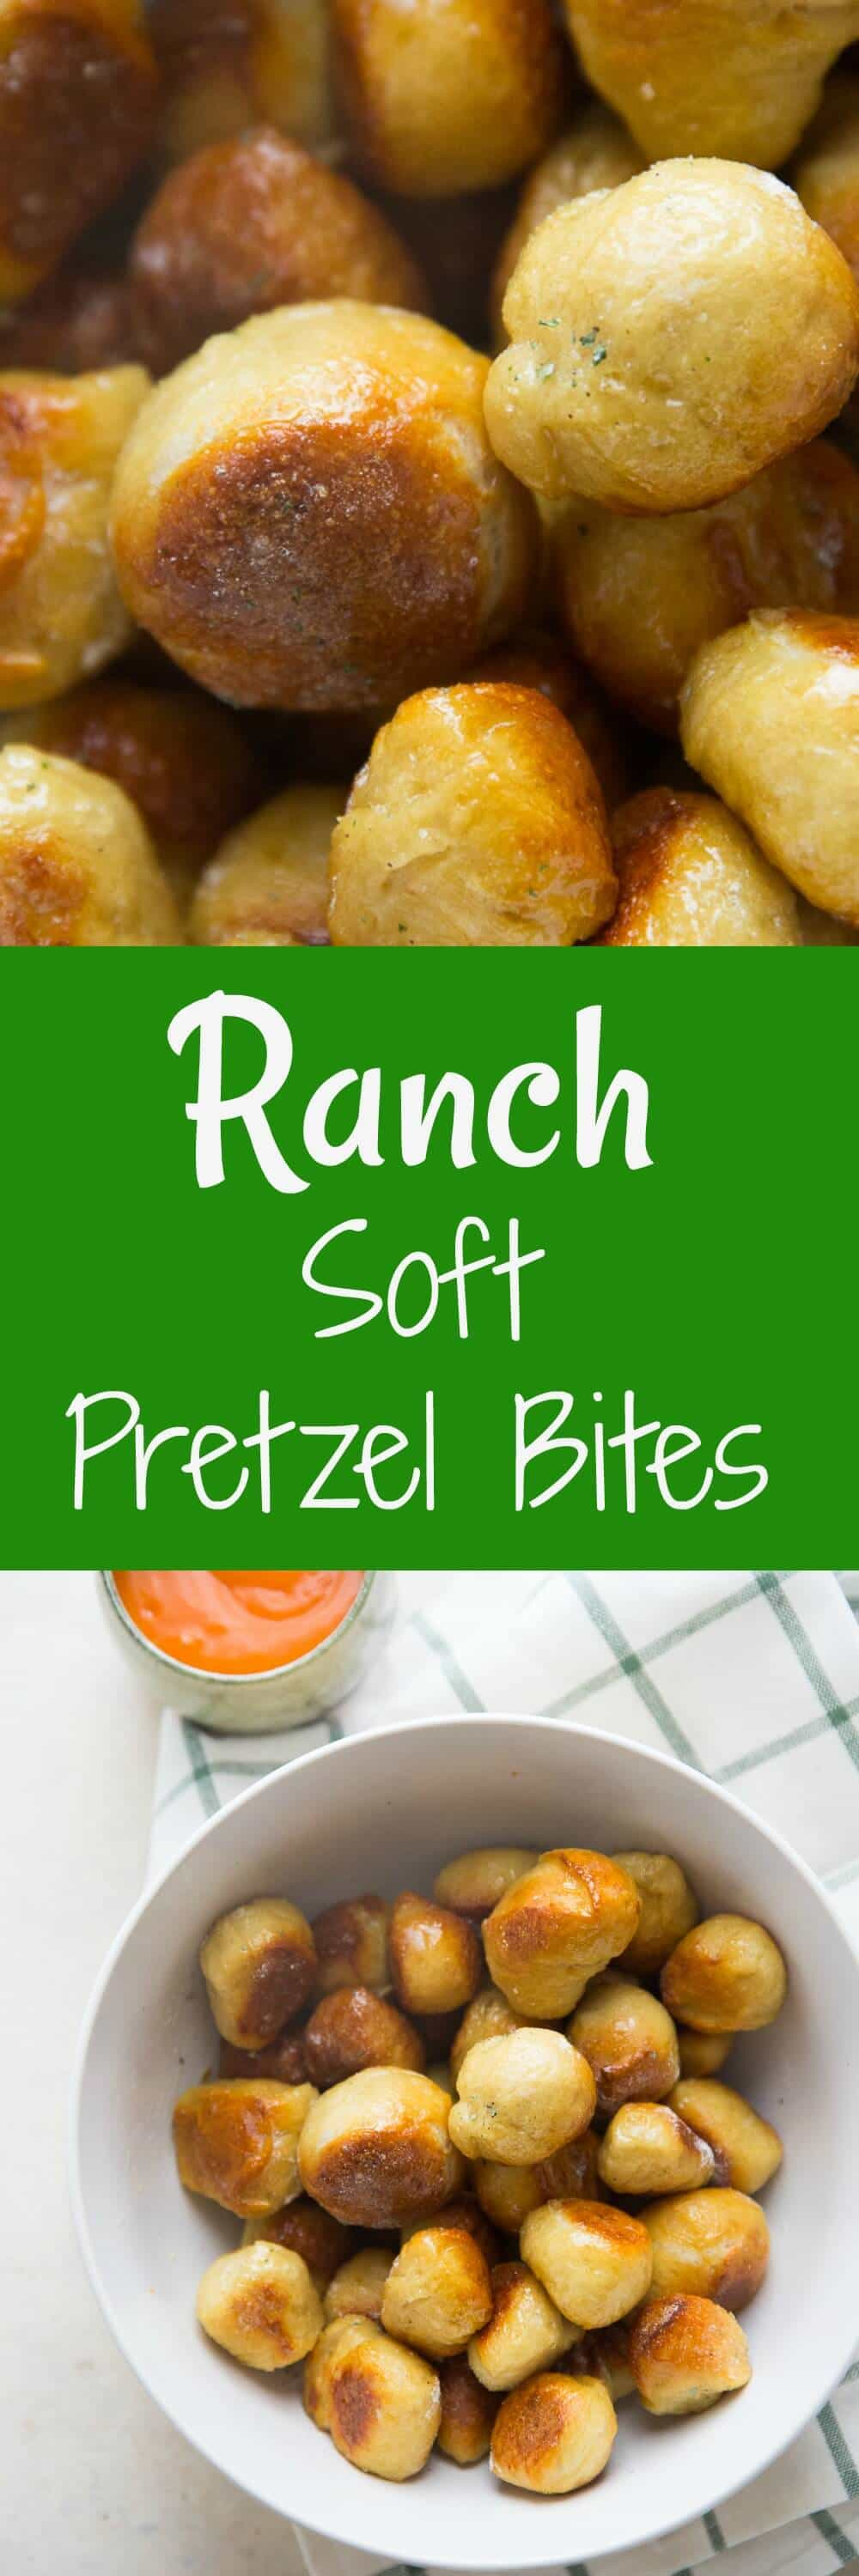 Soft pretzels can be made at home and they are so easy it's embarrassing! Coat them in butter and ranch seasoning and serve them with Buffalo sauce! Be warned, they are totally addicting!